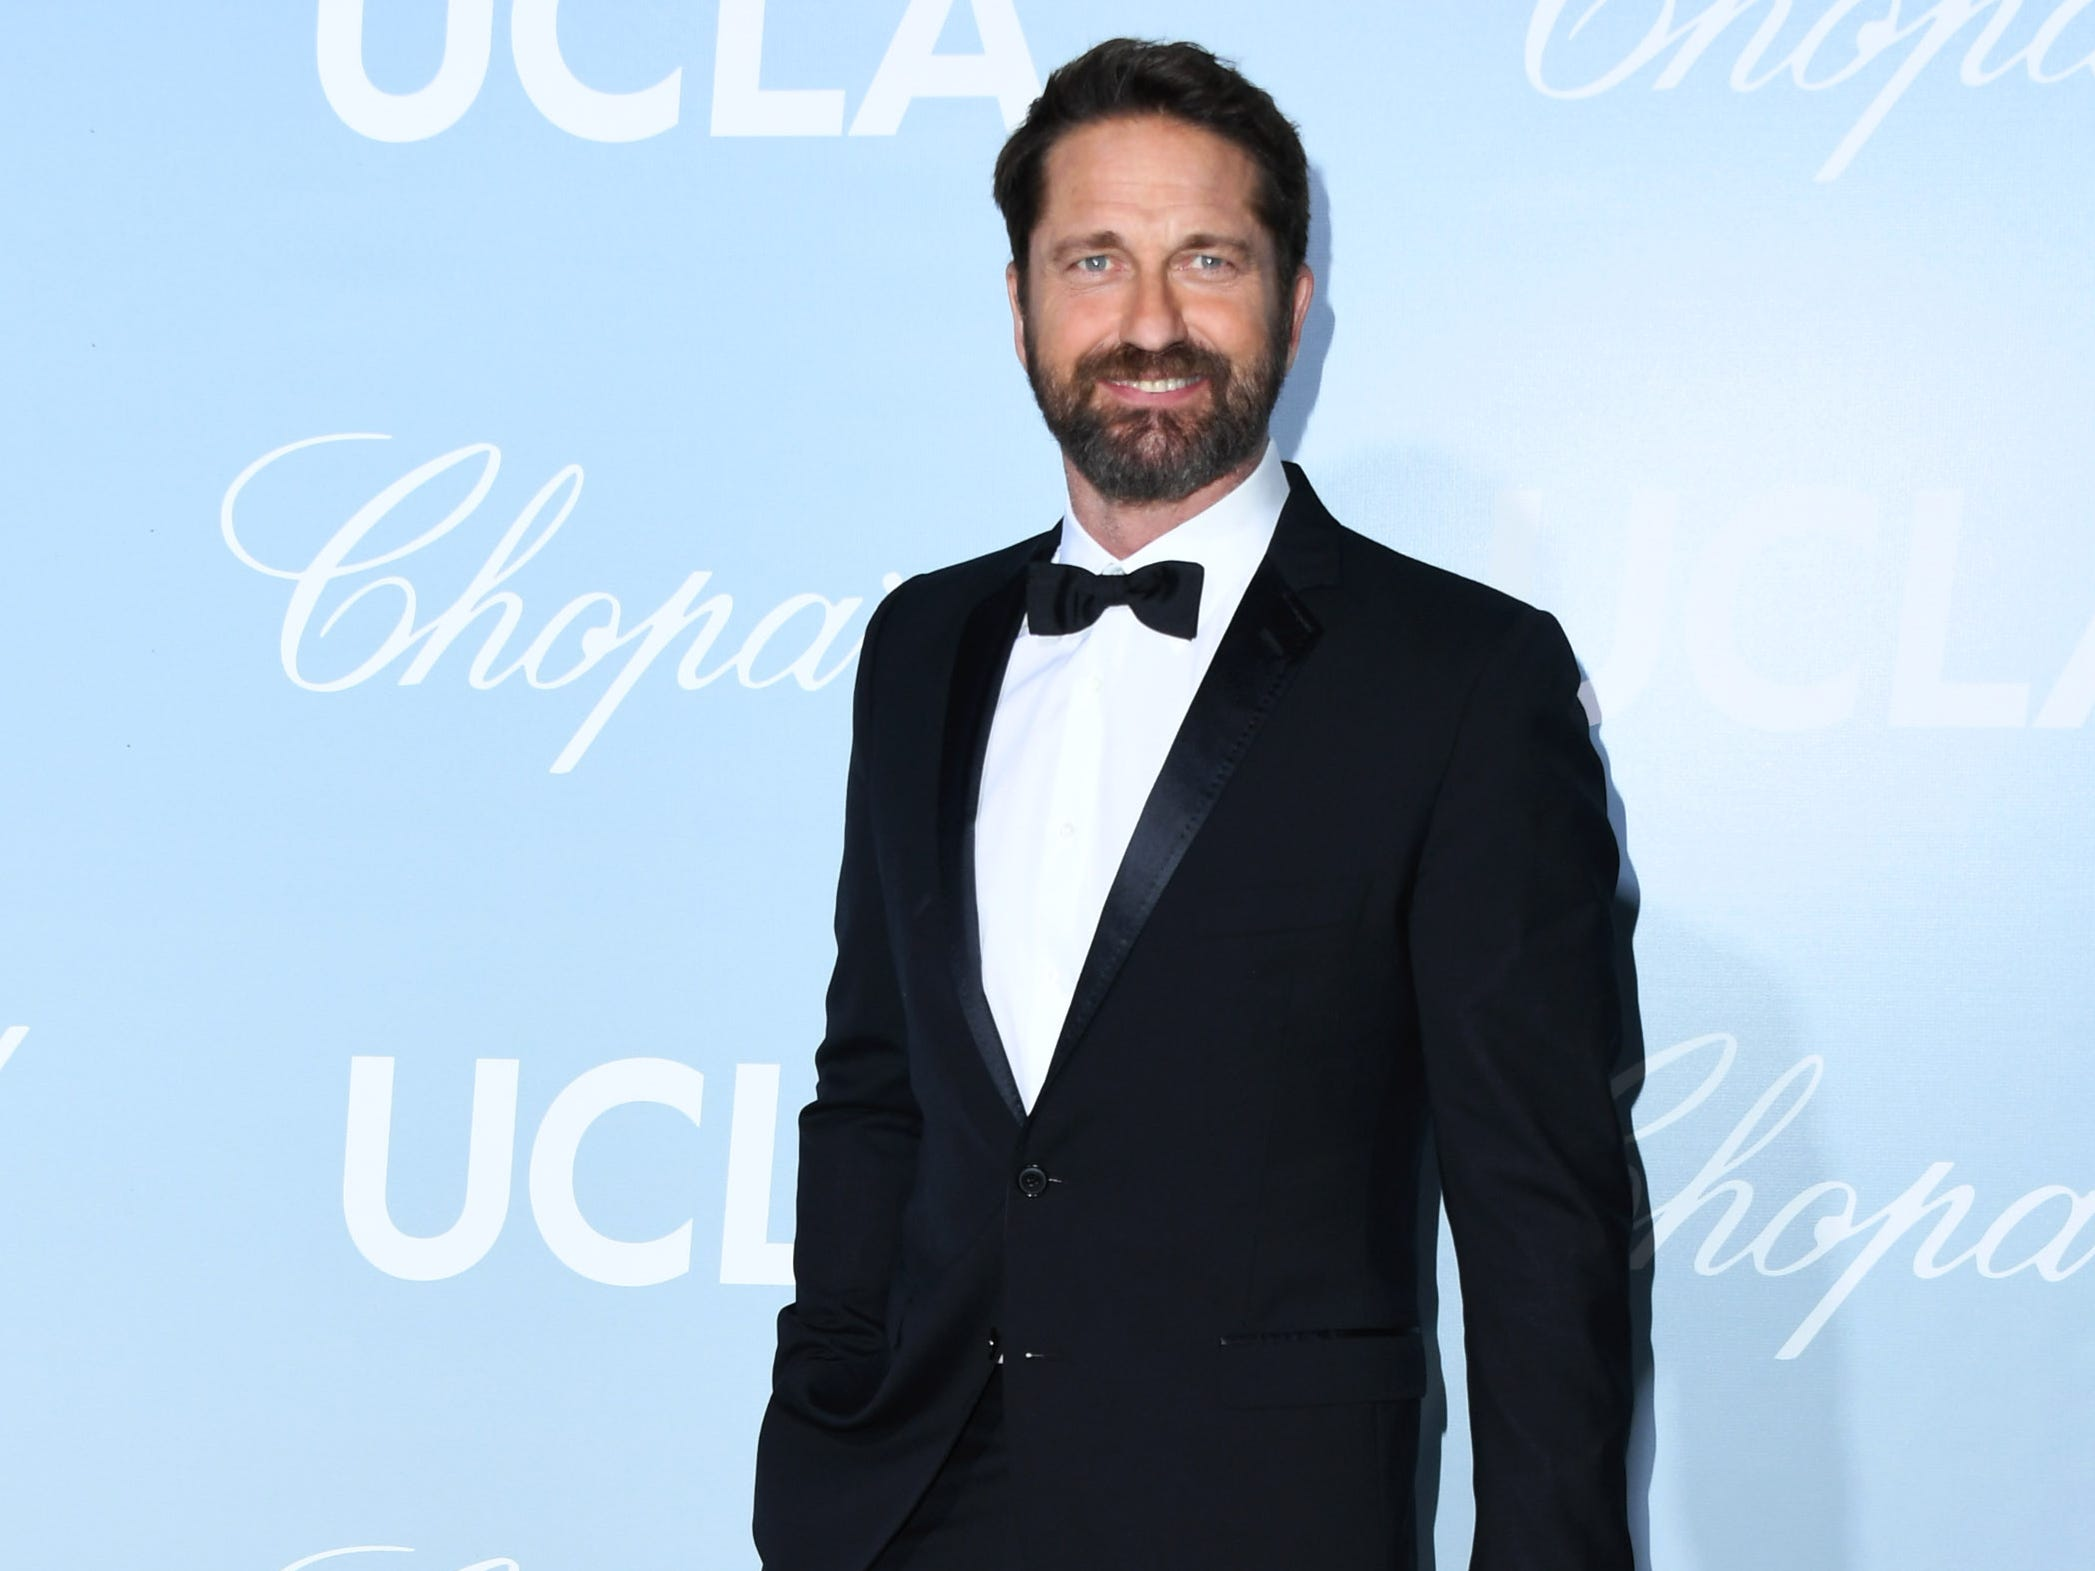 LOS ANGELES, CALIFORNIA - FEBRUARY 21:  Gerard Butler attends the 2019 Hollywood For Science Gala at Private Residence on February 21, 2019 in Los Angeles, California. (Photo by Jon Kopaloff/FilmMagic) ORG XMIT: 775284318 ORIG FILE ID: 1131311109